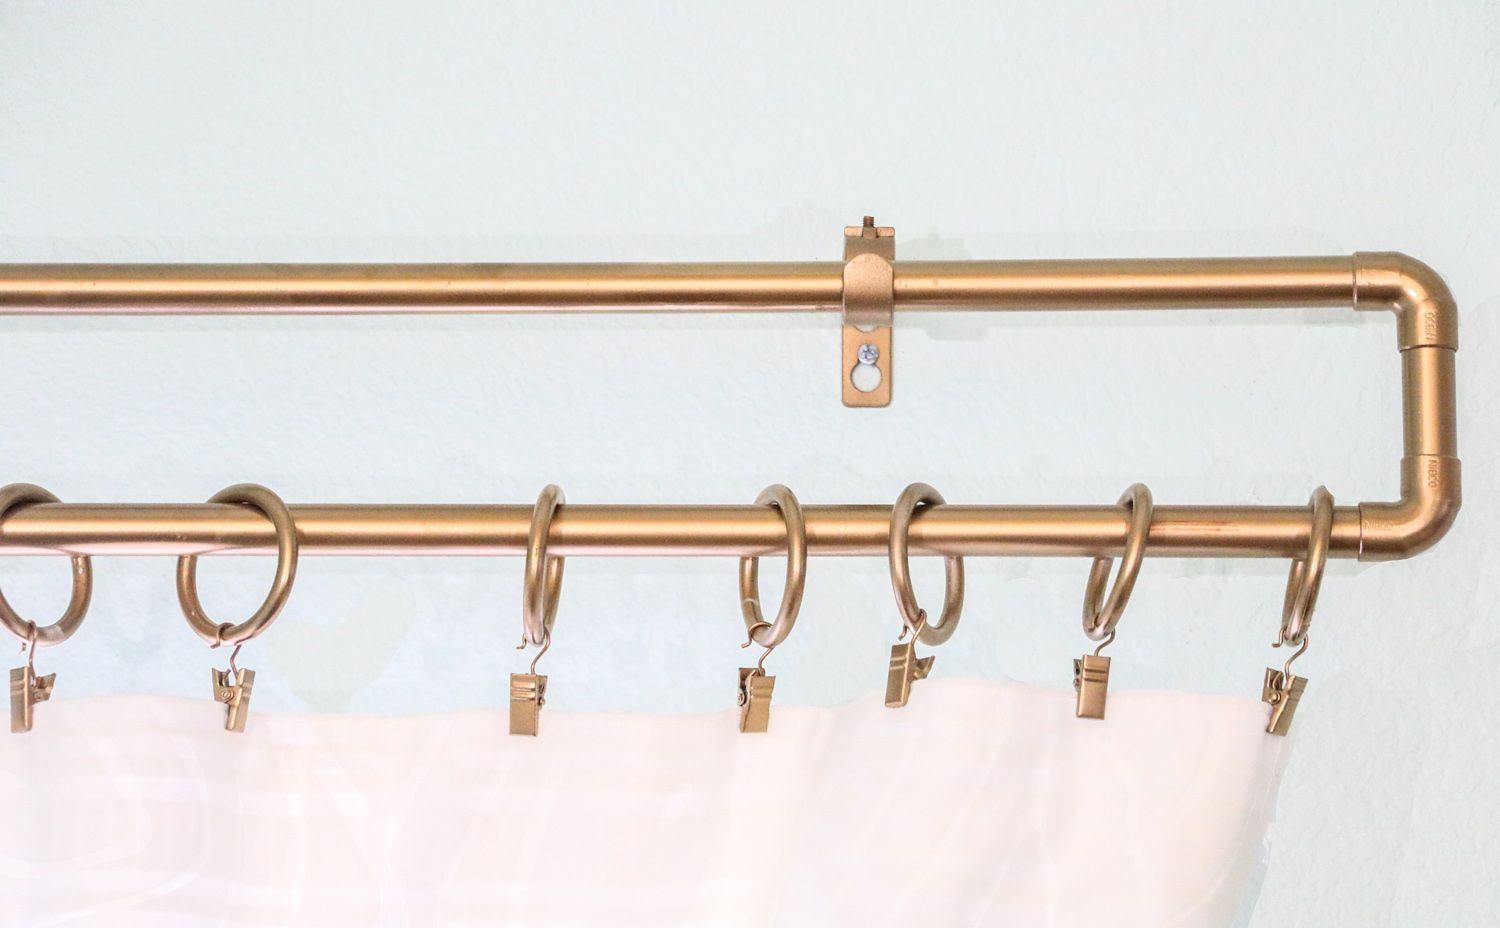 7 Simple And Inexpensive Ways To Update Your Family Room Gold Curtain Rods Curtain Rods Gold Curtains